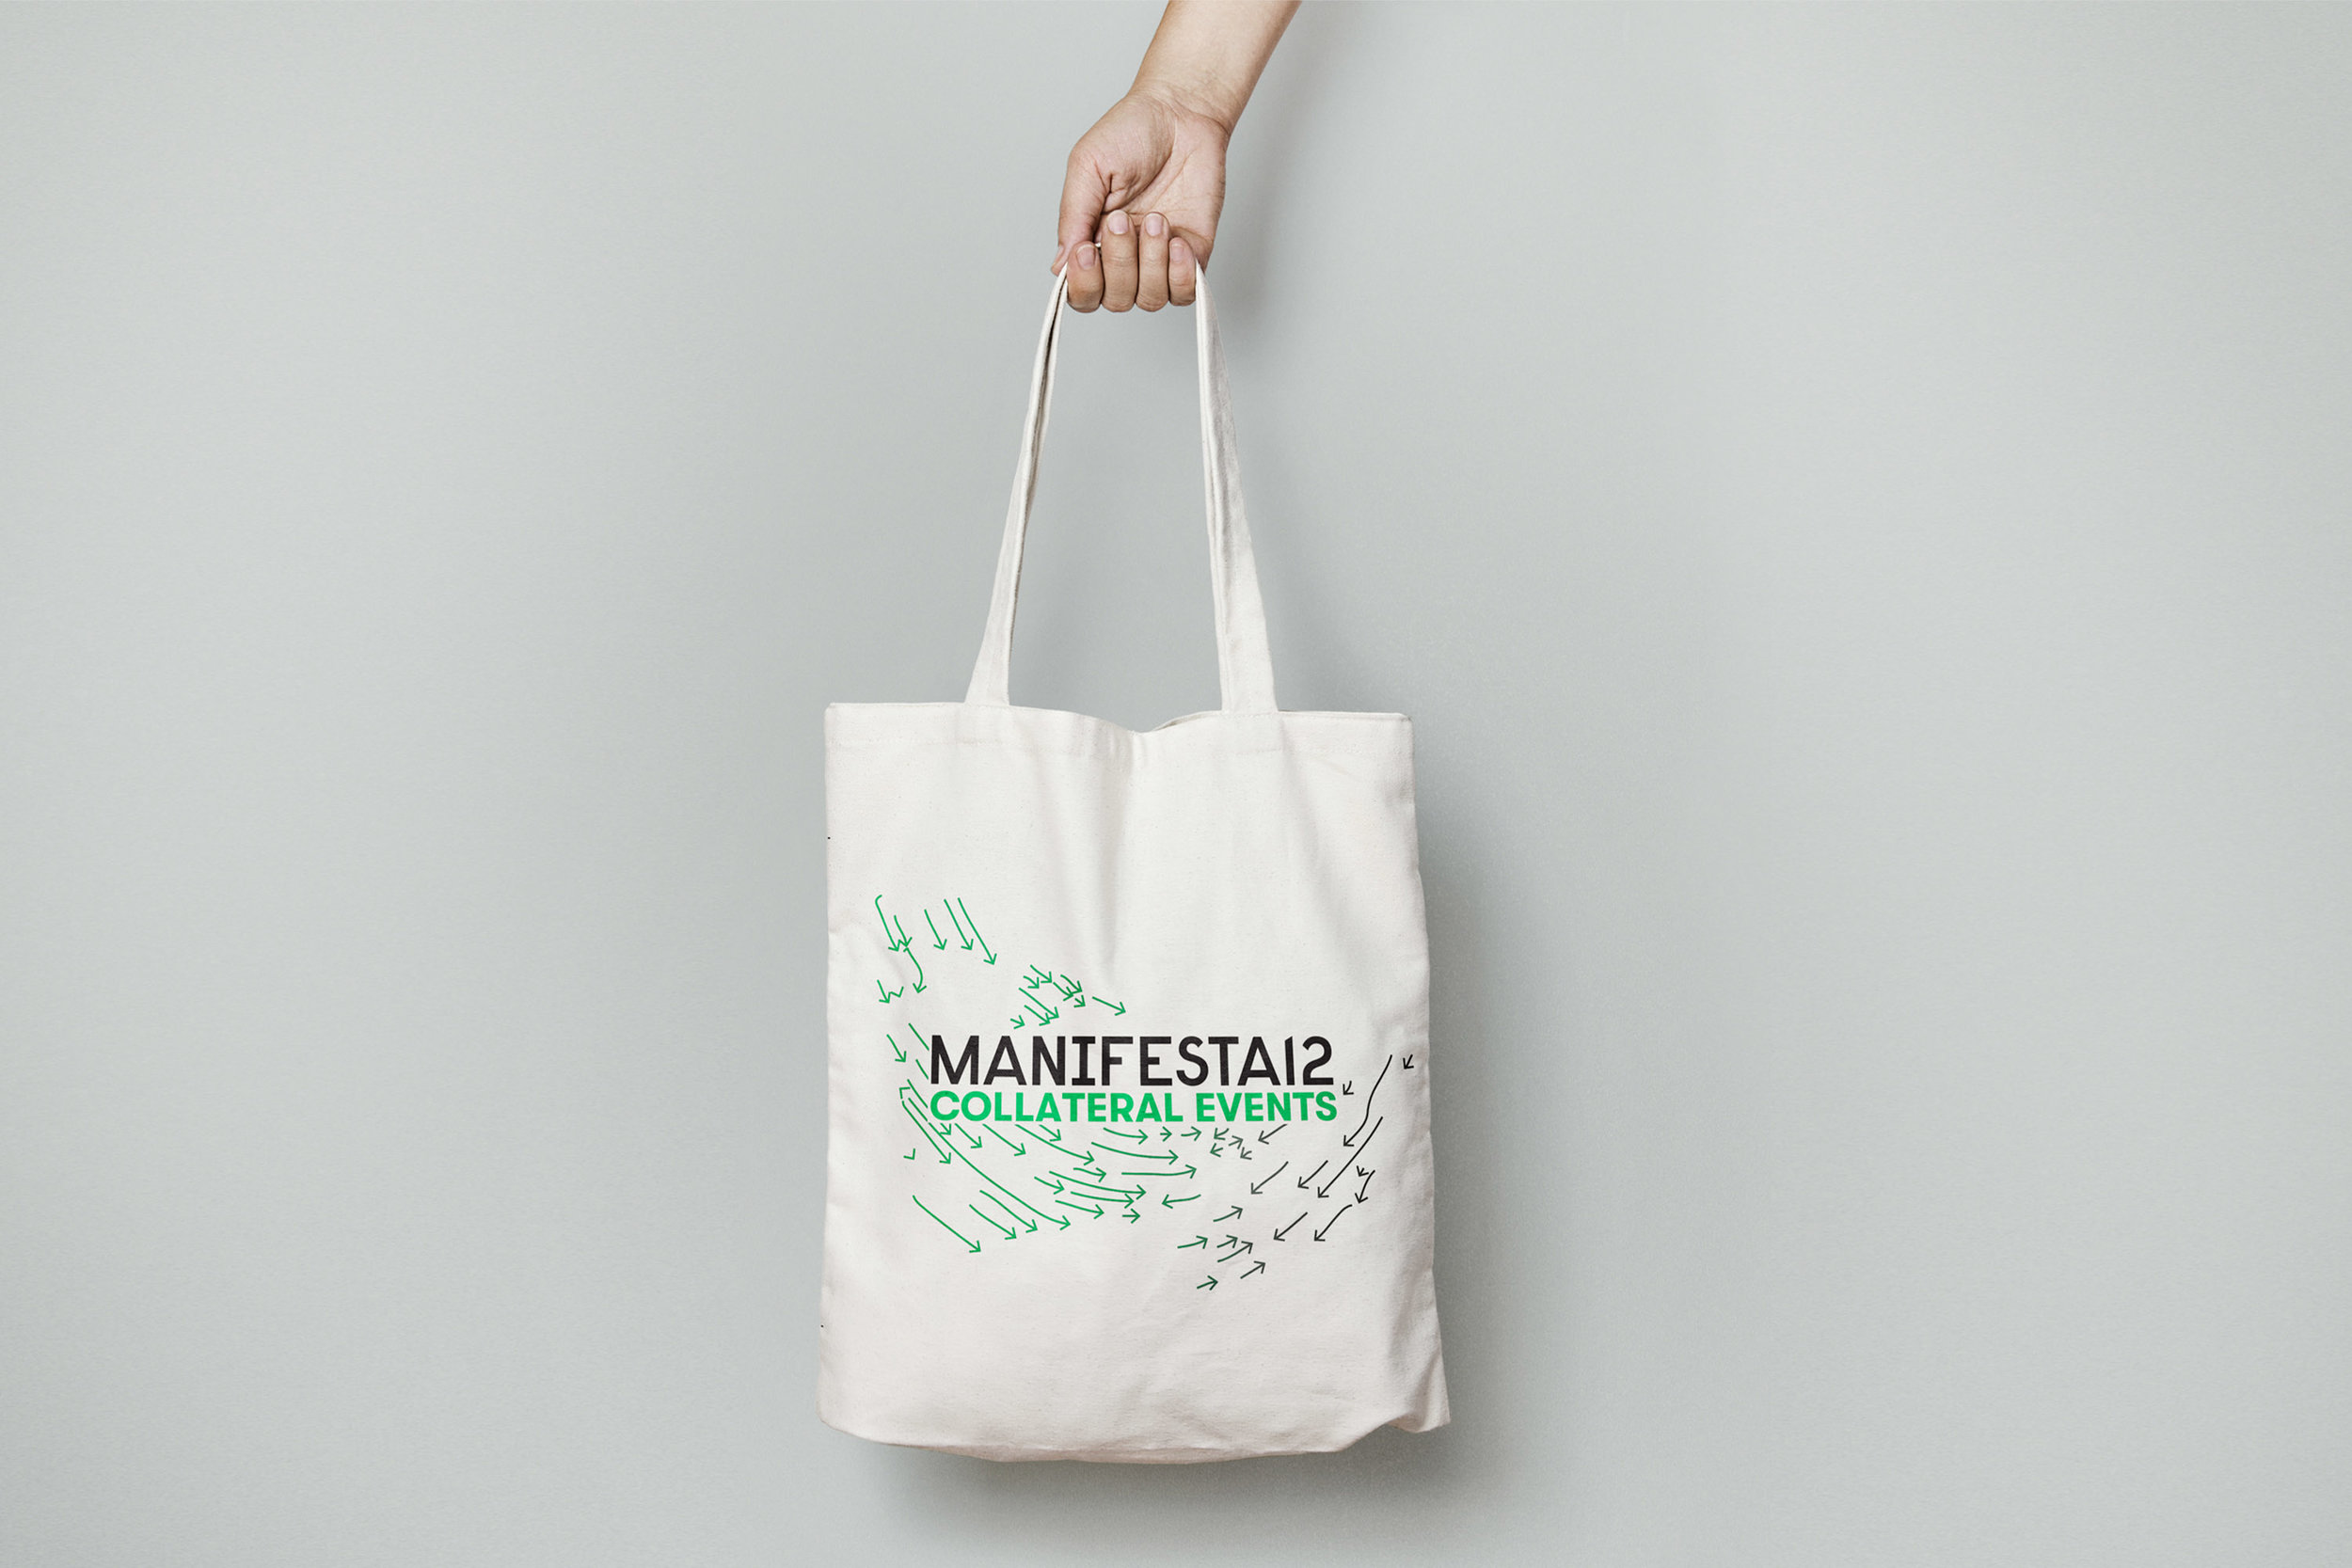 M12 Collateral Events_MOCKUP - Bag.jpg